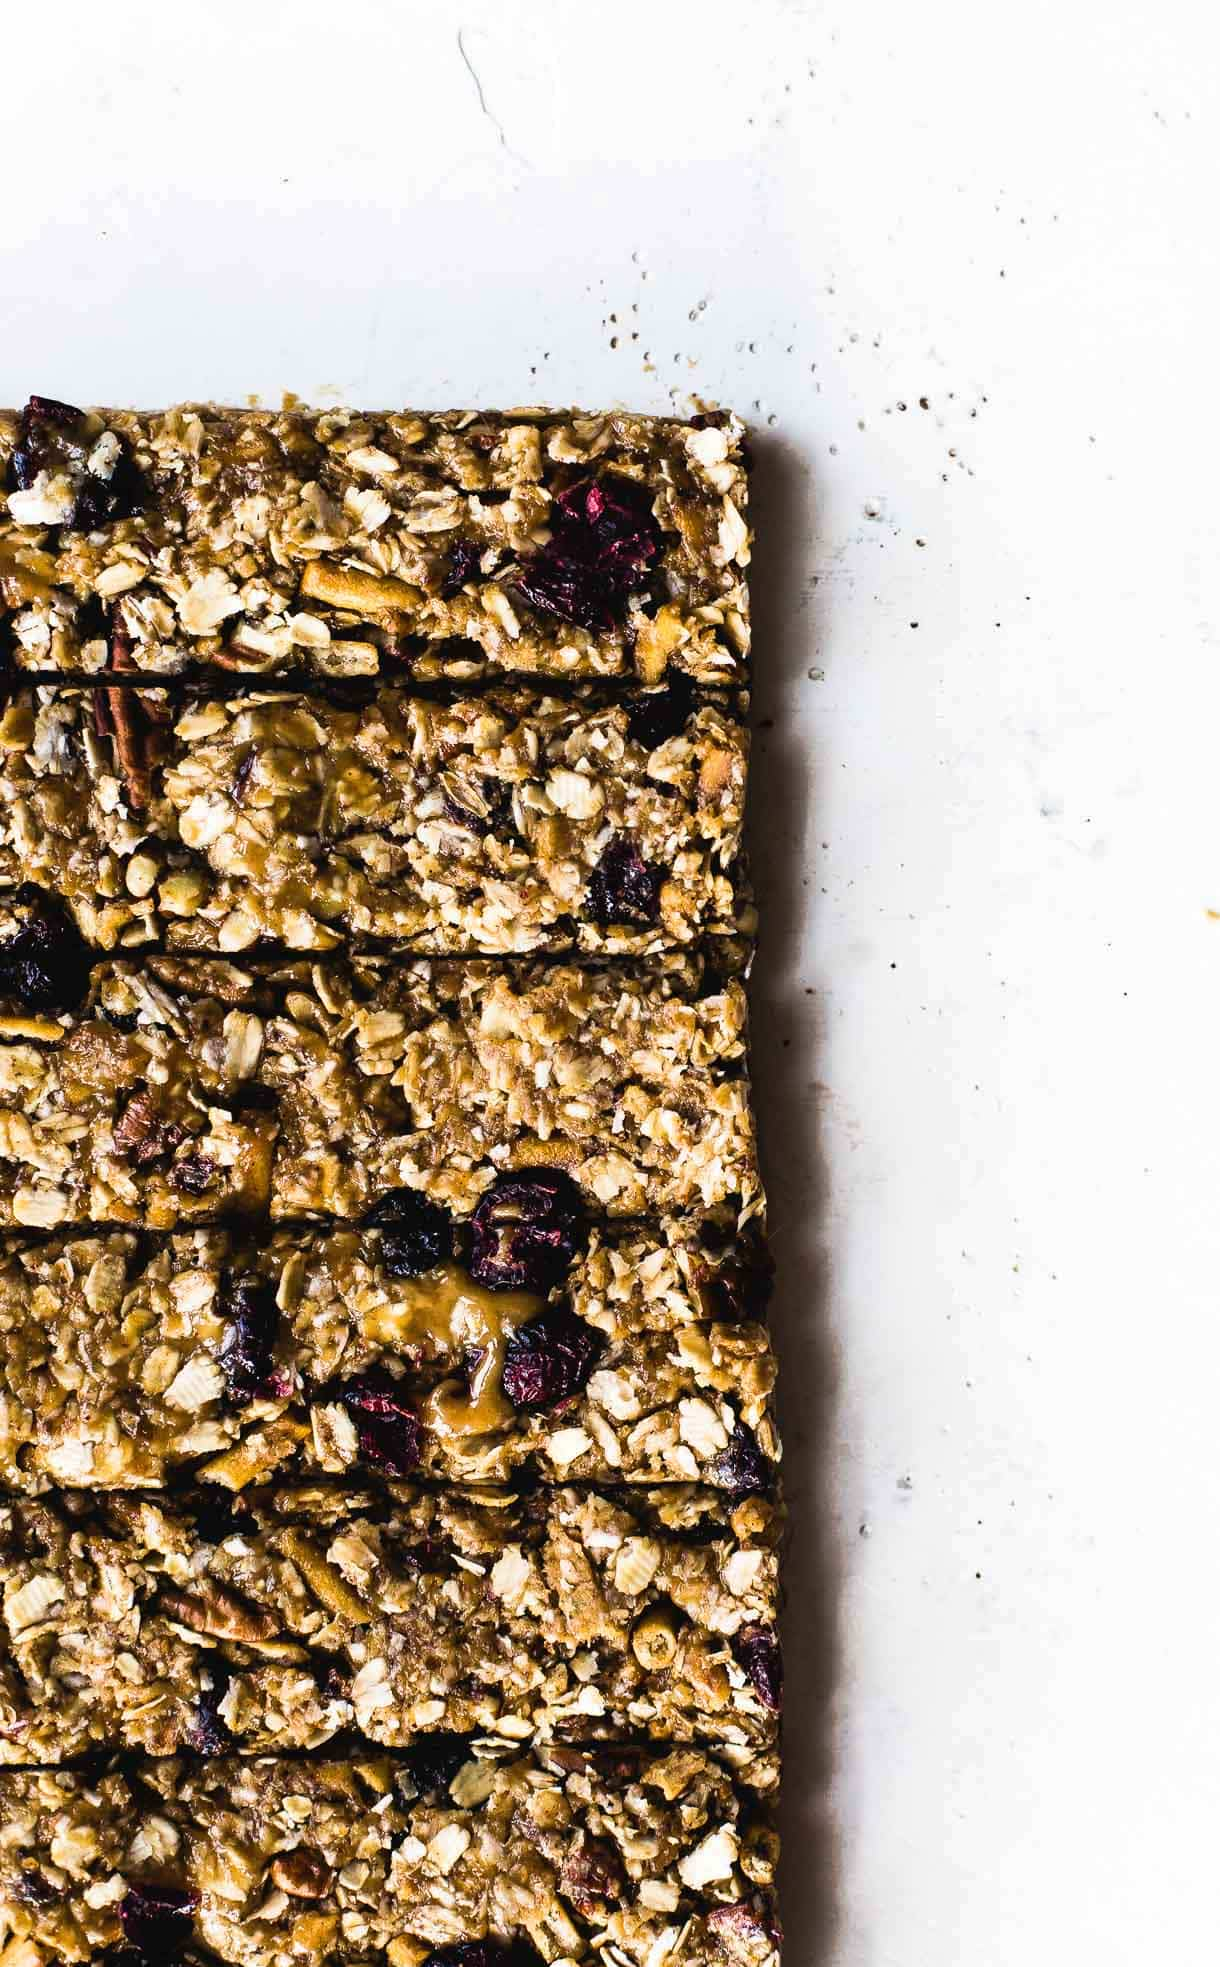 Really Chewy No-Bake Peanut Butter Granola Bars {made with brown rice syrup & honey, gluten-free, easy to make} #chewygranolabars